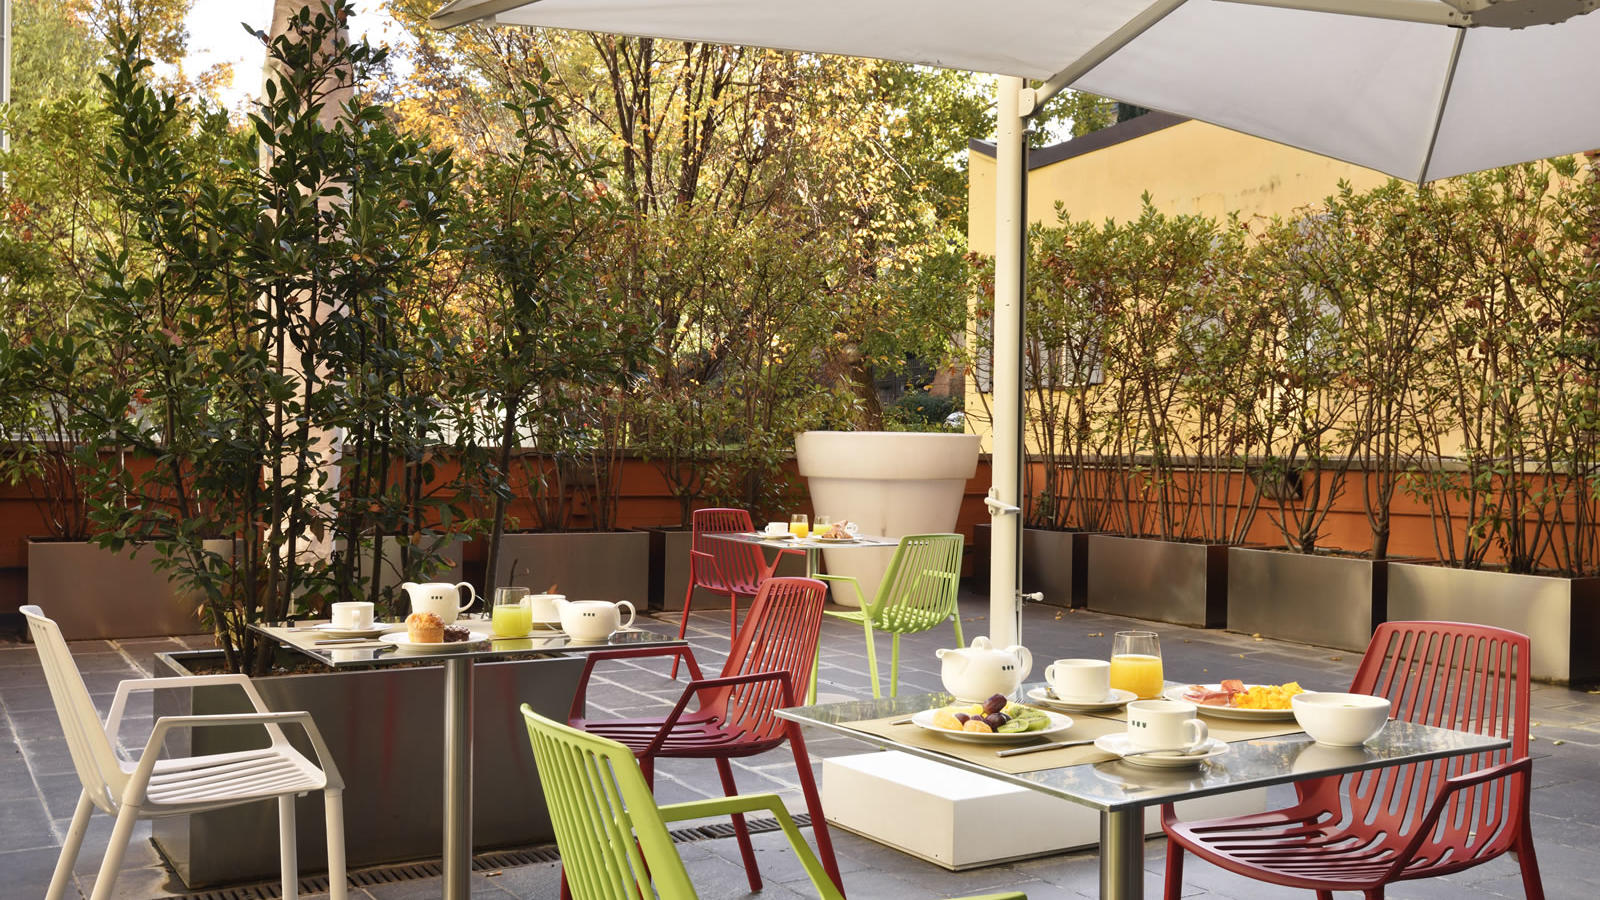 Breakfast outdoor | Bologna Centro